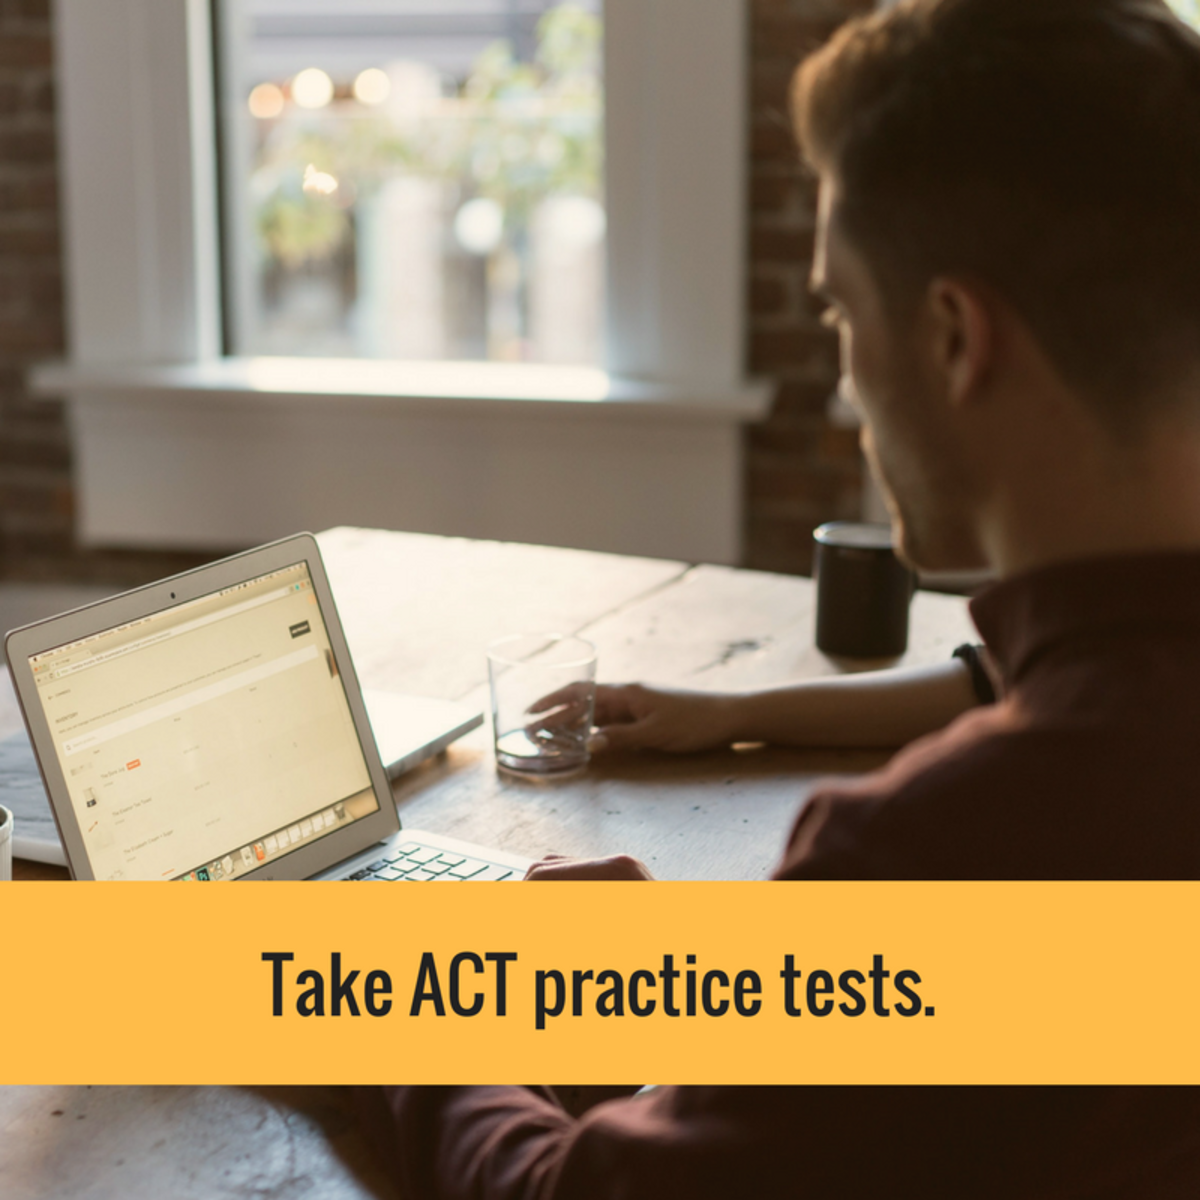 7 Practical Steps for Your Personalized ACT Study Program